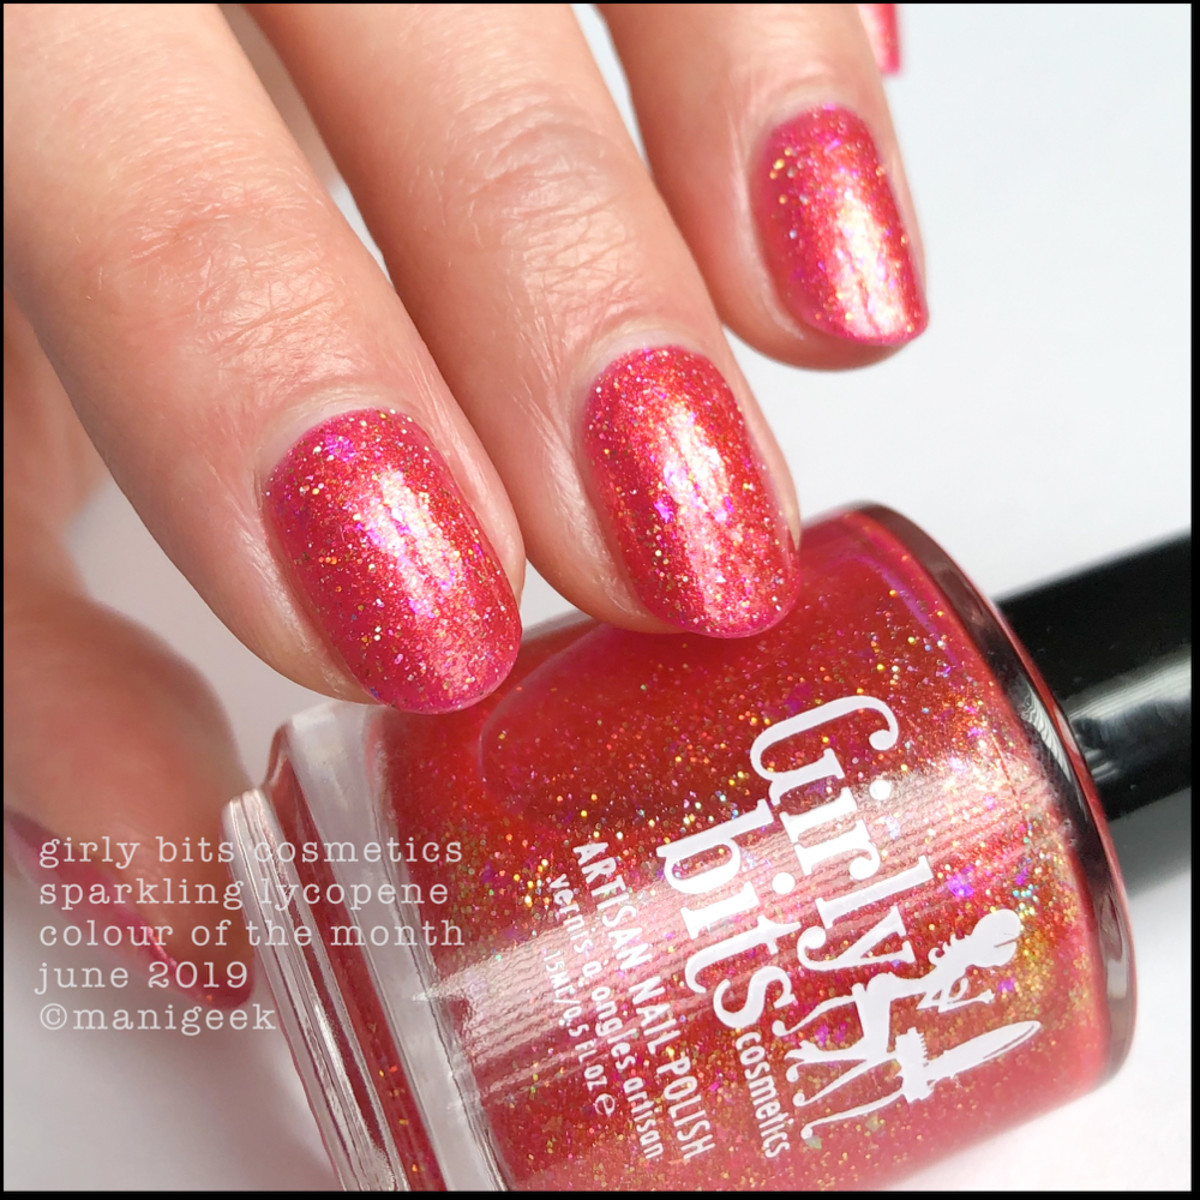 Girly Bits Cosmetics Sparkling Lycopene - Colour of the Month June 2019